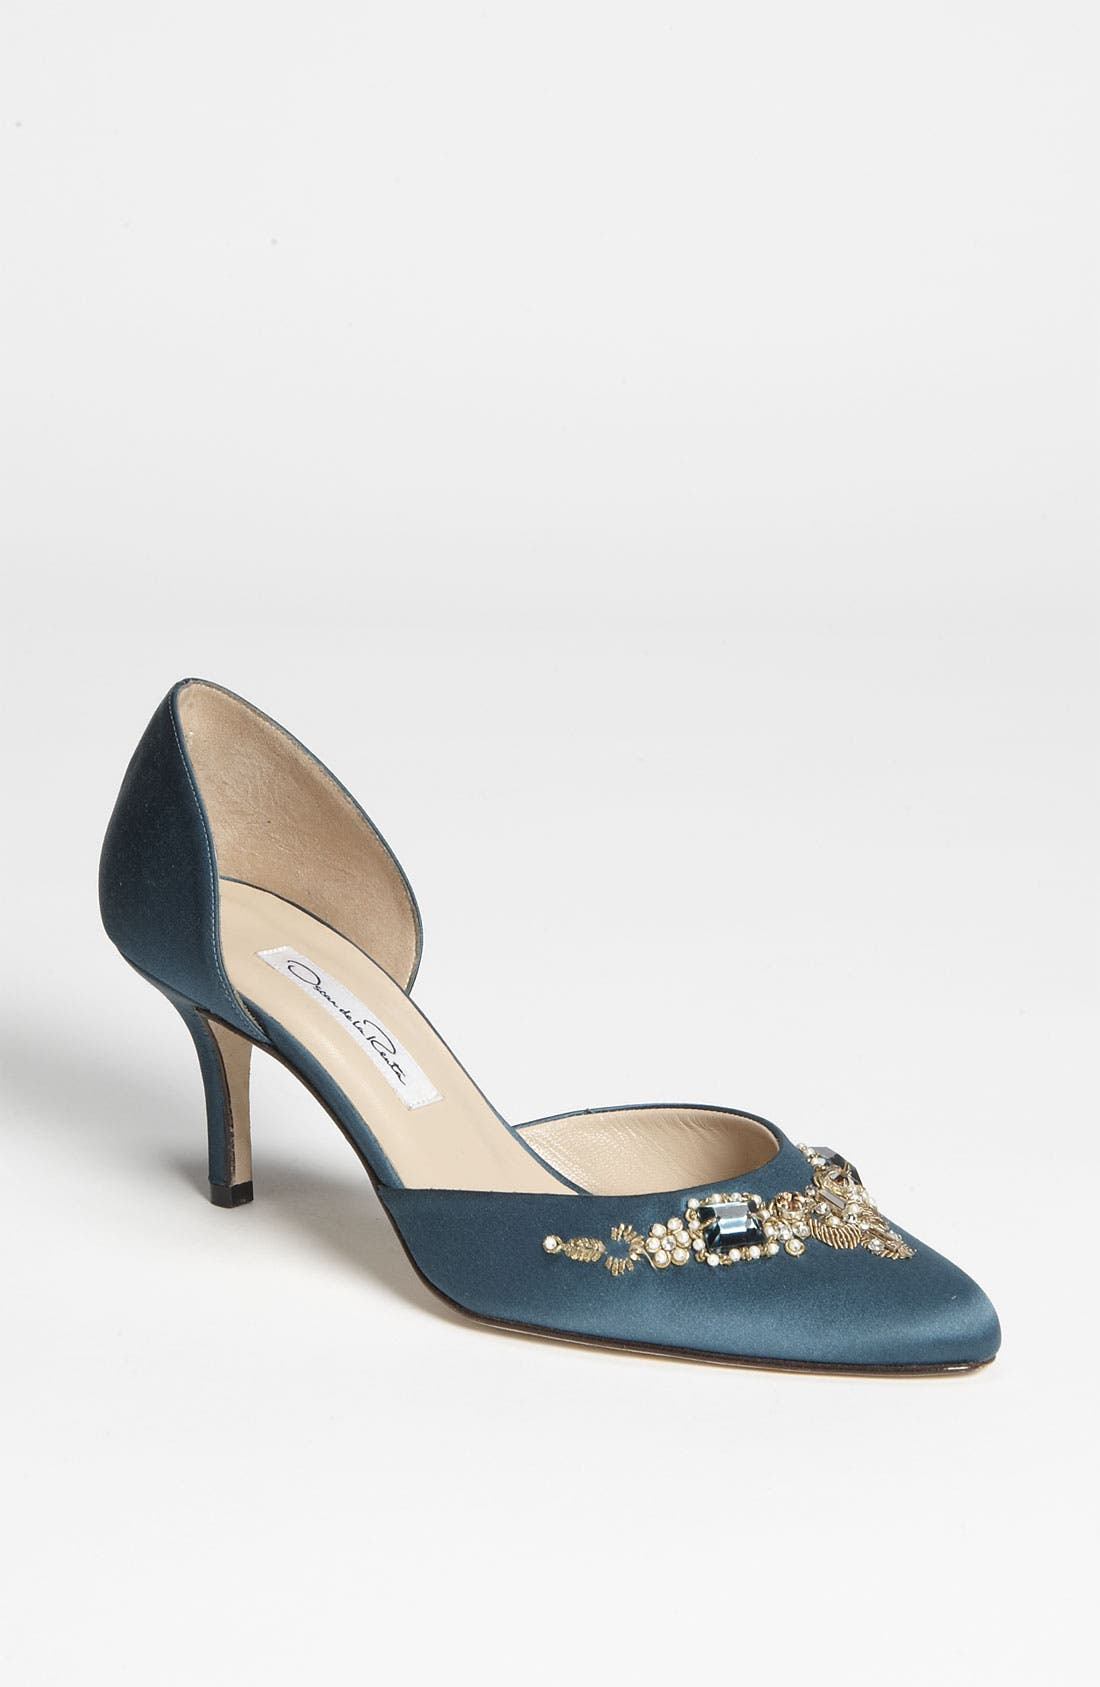 Main Image - Oscar de la Renta 'Binato' Beaded Satin d'Orsay Pump